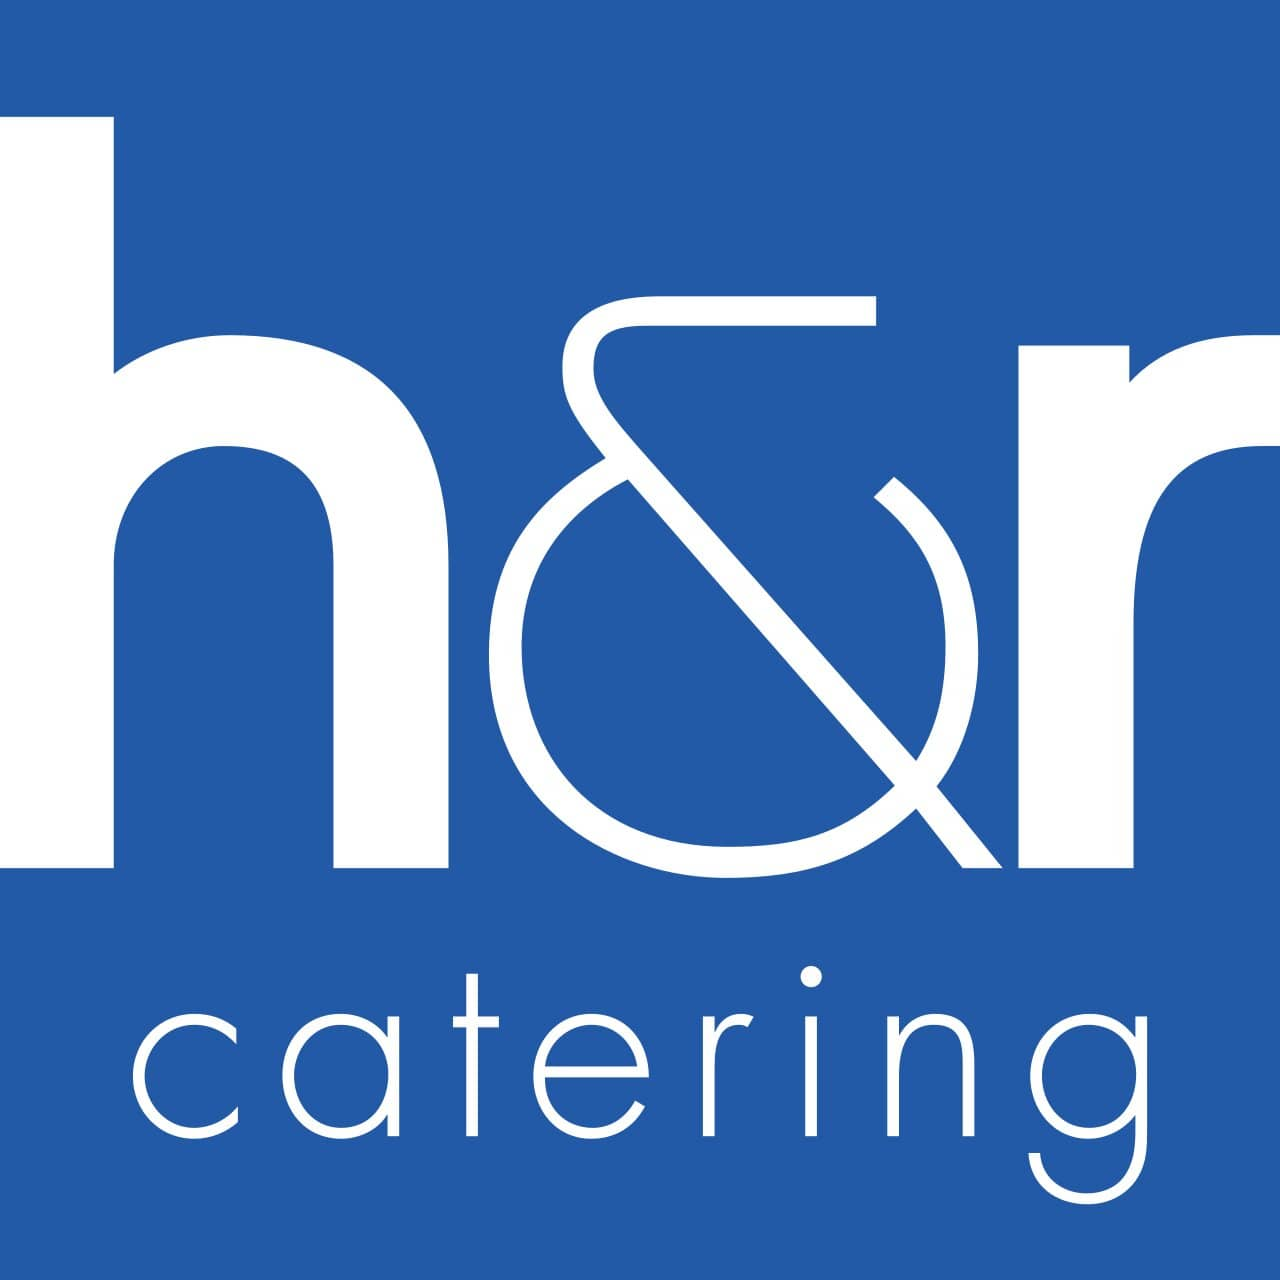 H&R catering